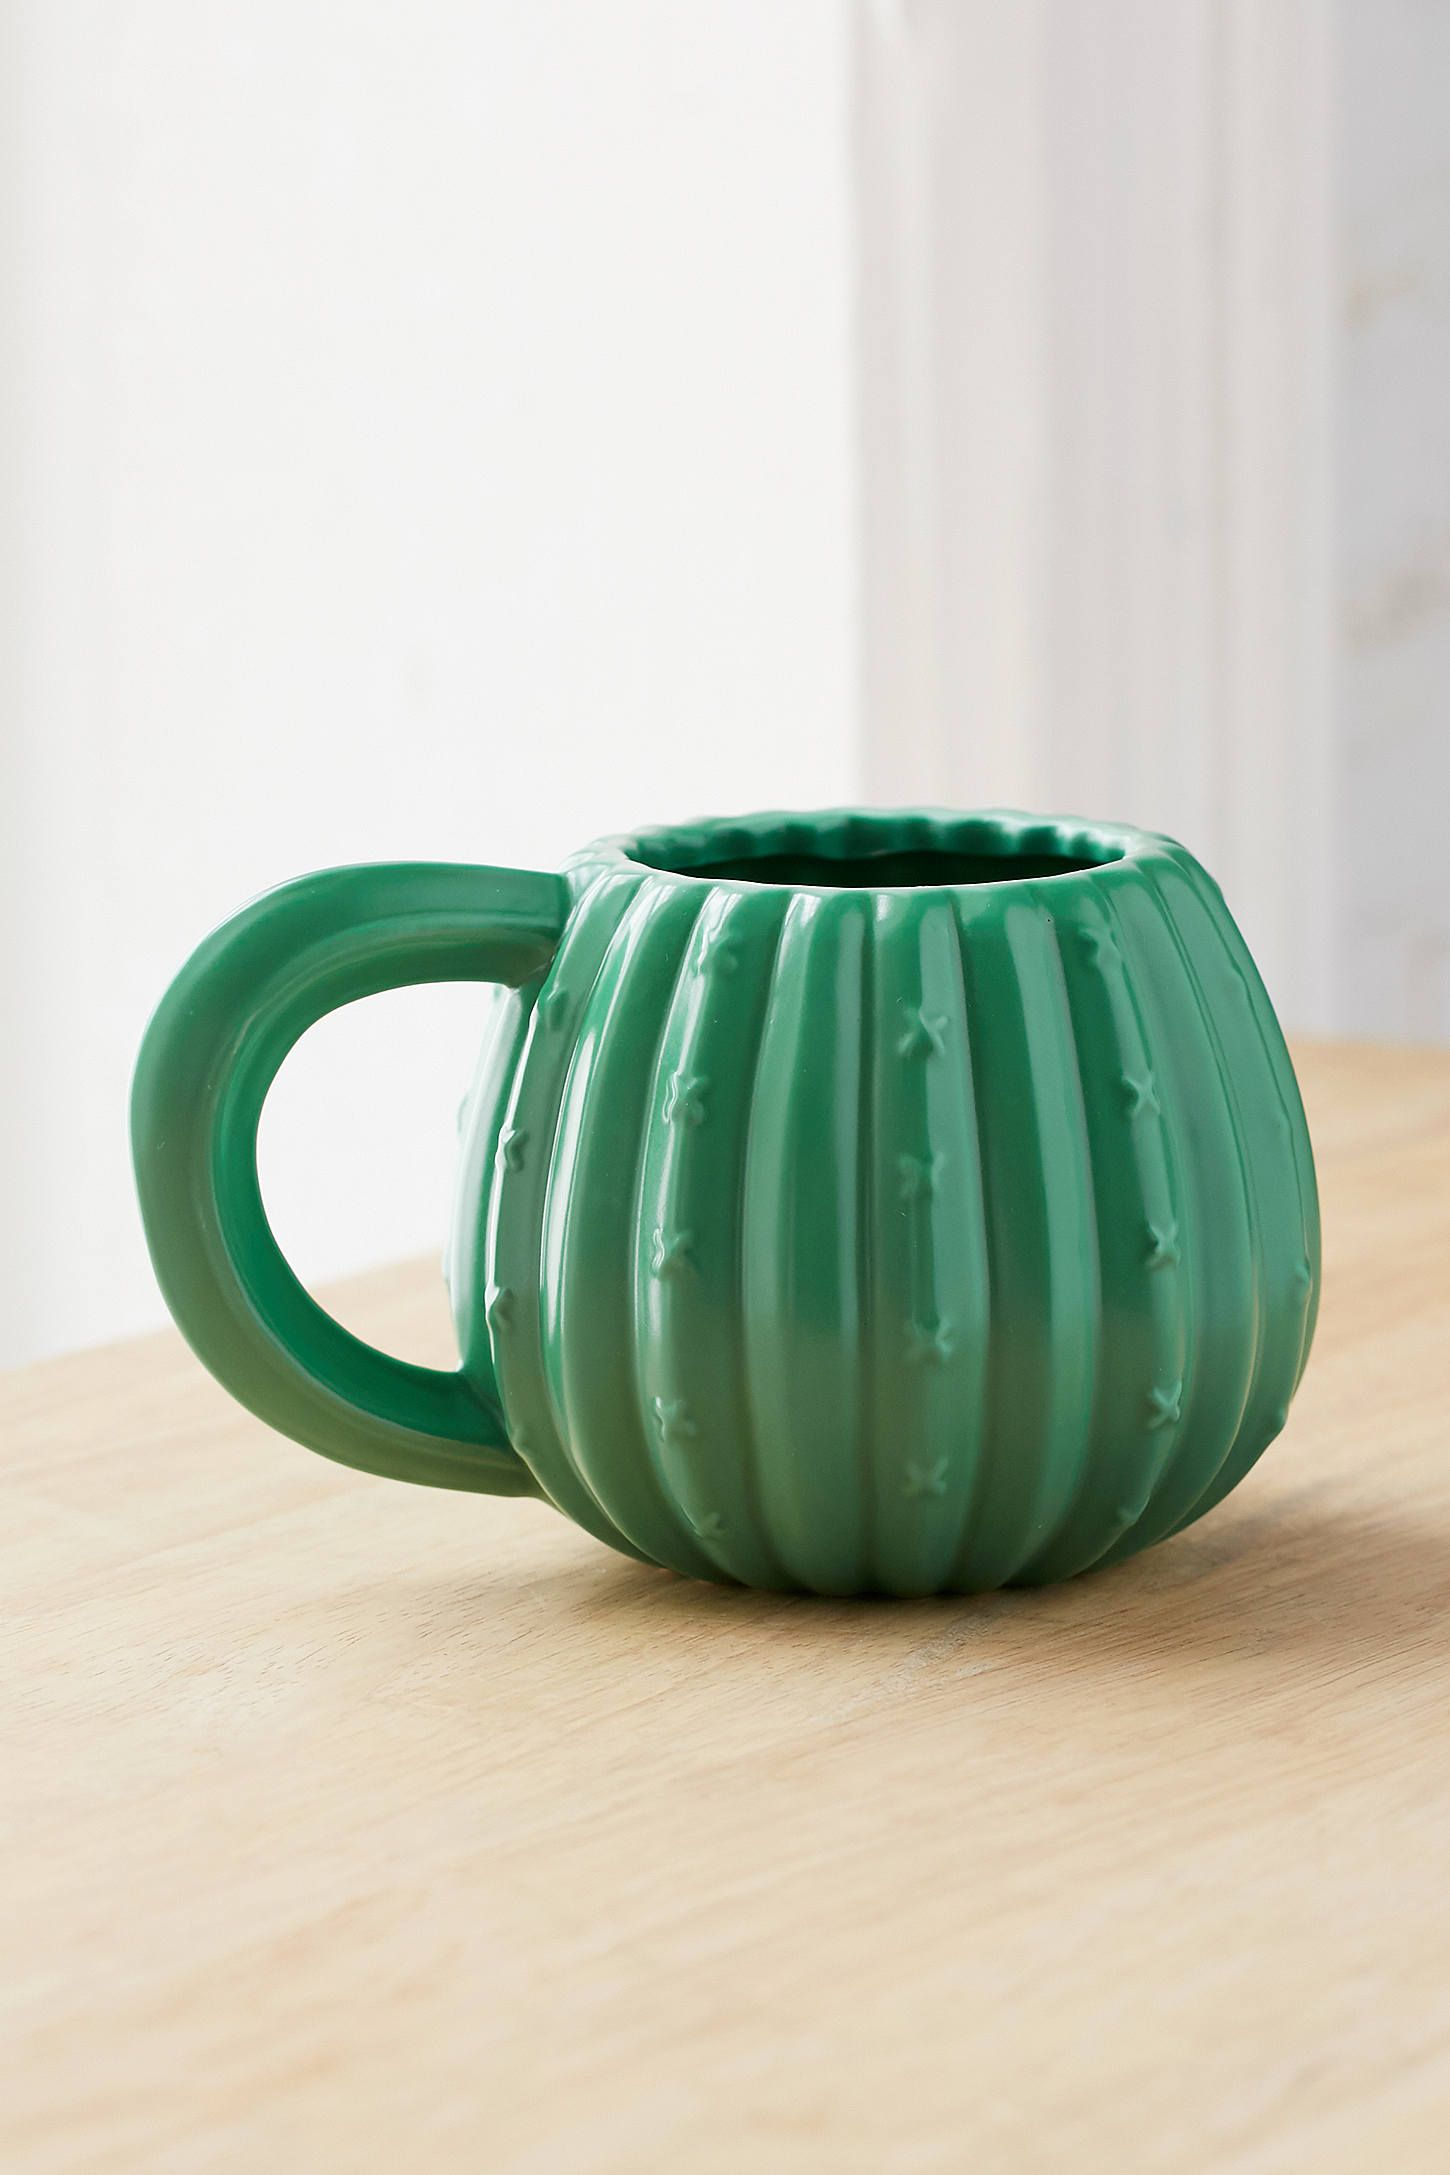 Cactus Mug Mugs Ceramic Mugs Ceramic Coffee Cups